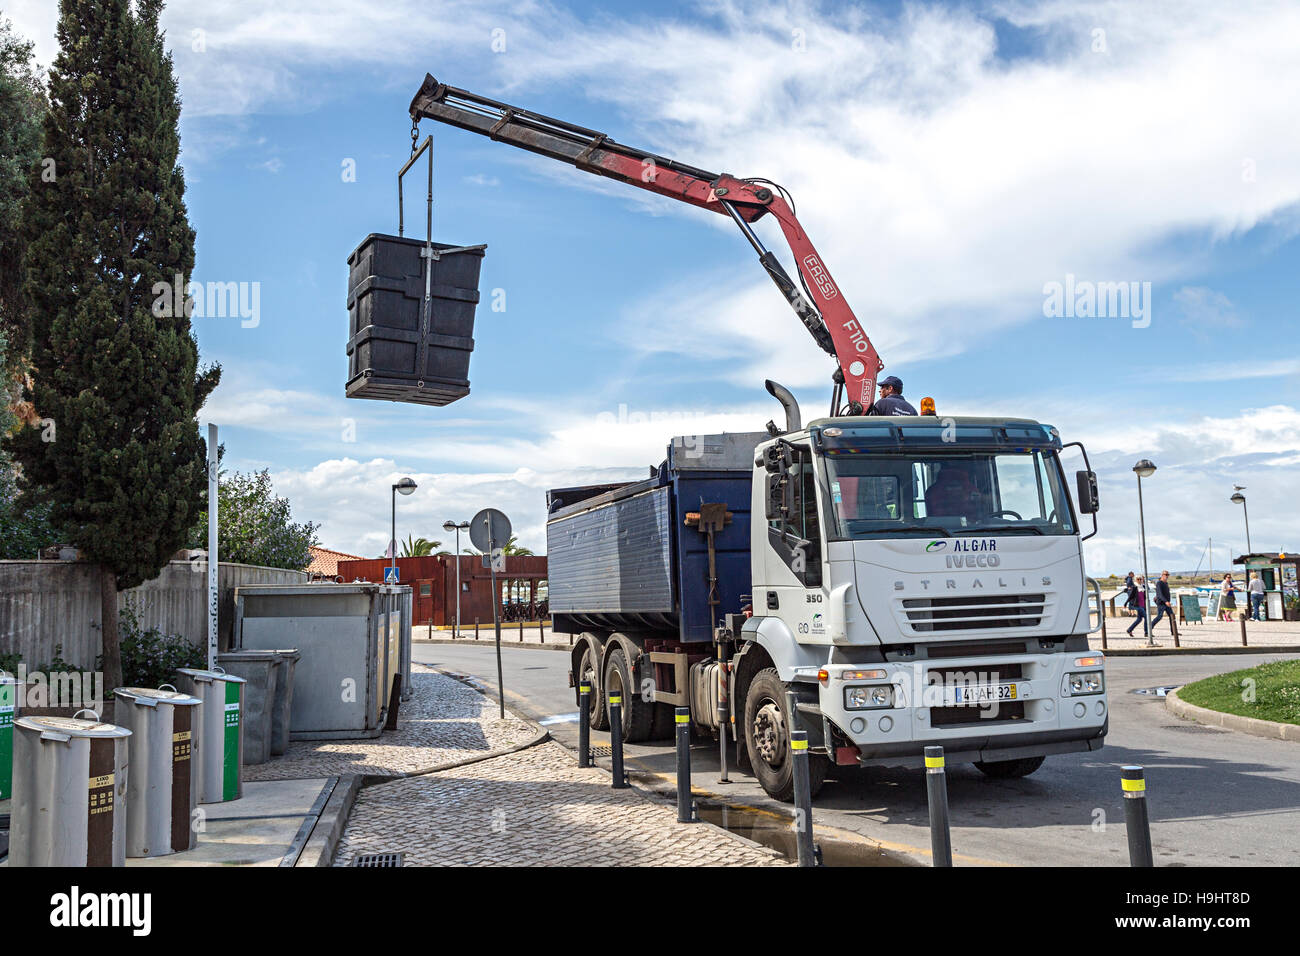 Lorry with lifting arm picking up recycling container, Alvor, Algarve, Portugal - Stock Image